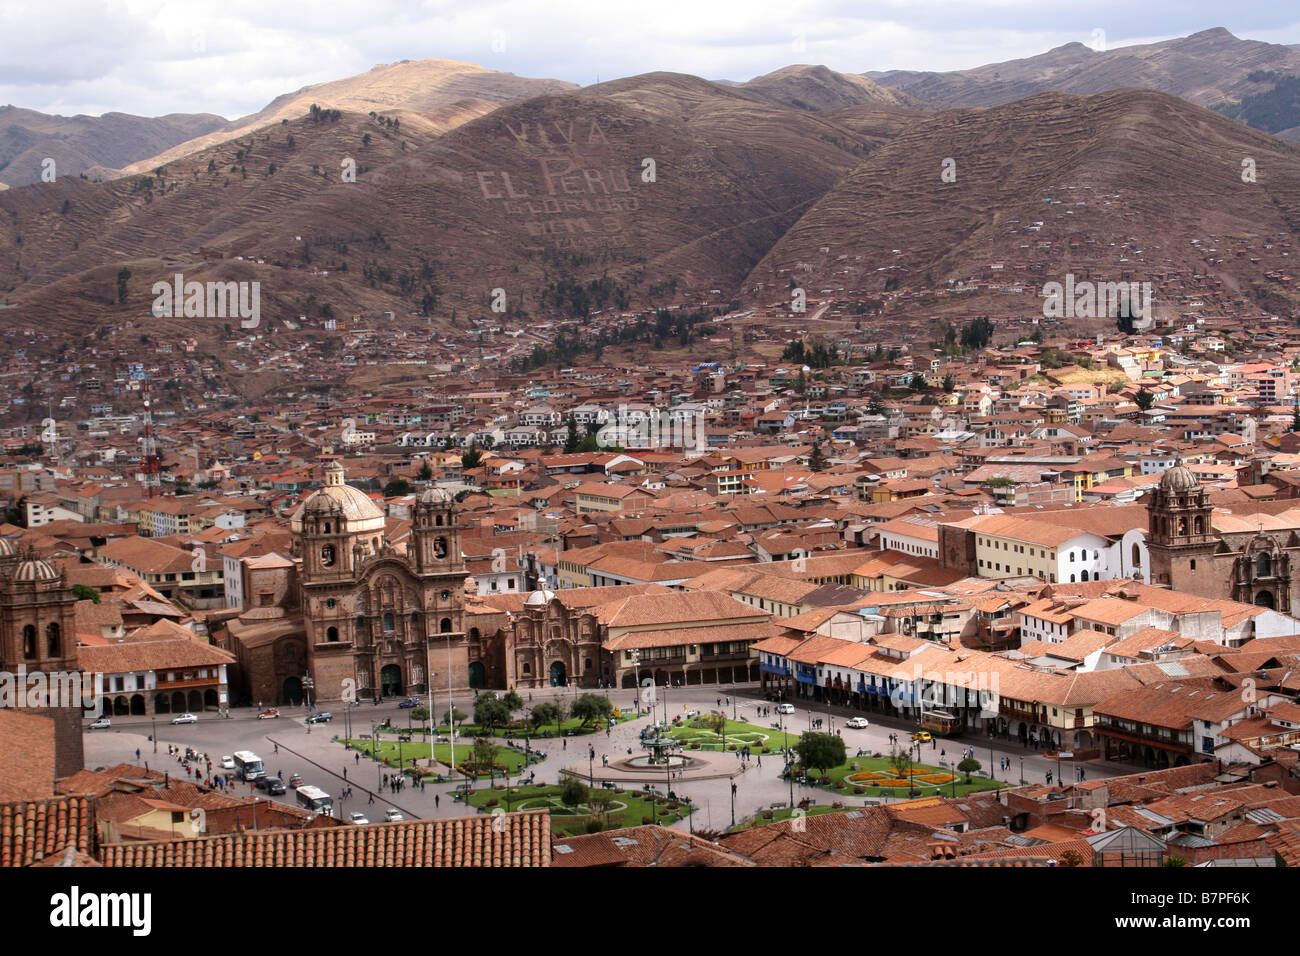 The view of the Plaza de Armas and the surrounding landscape of Cusco, Peru Stock Photo